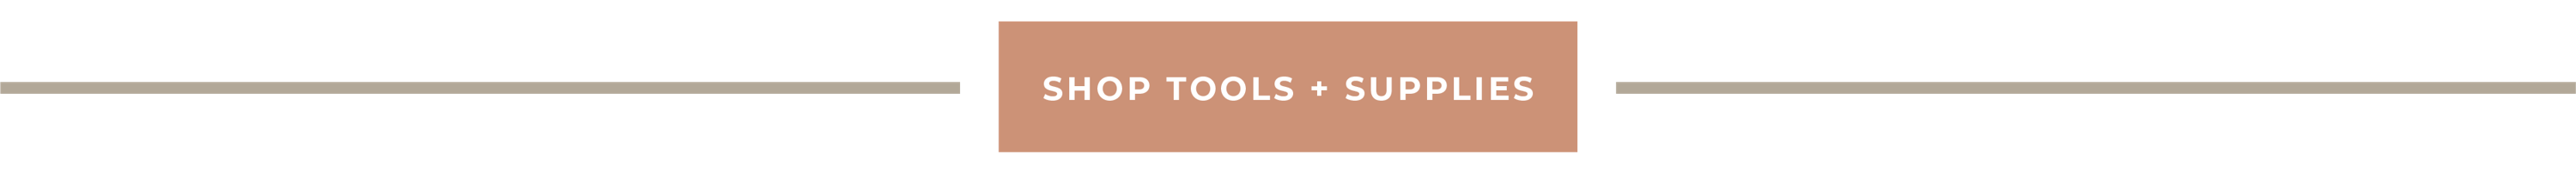 Shop Tools + Supplies